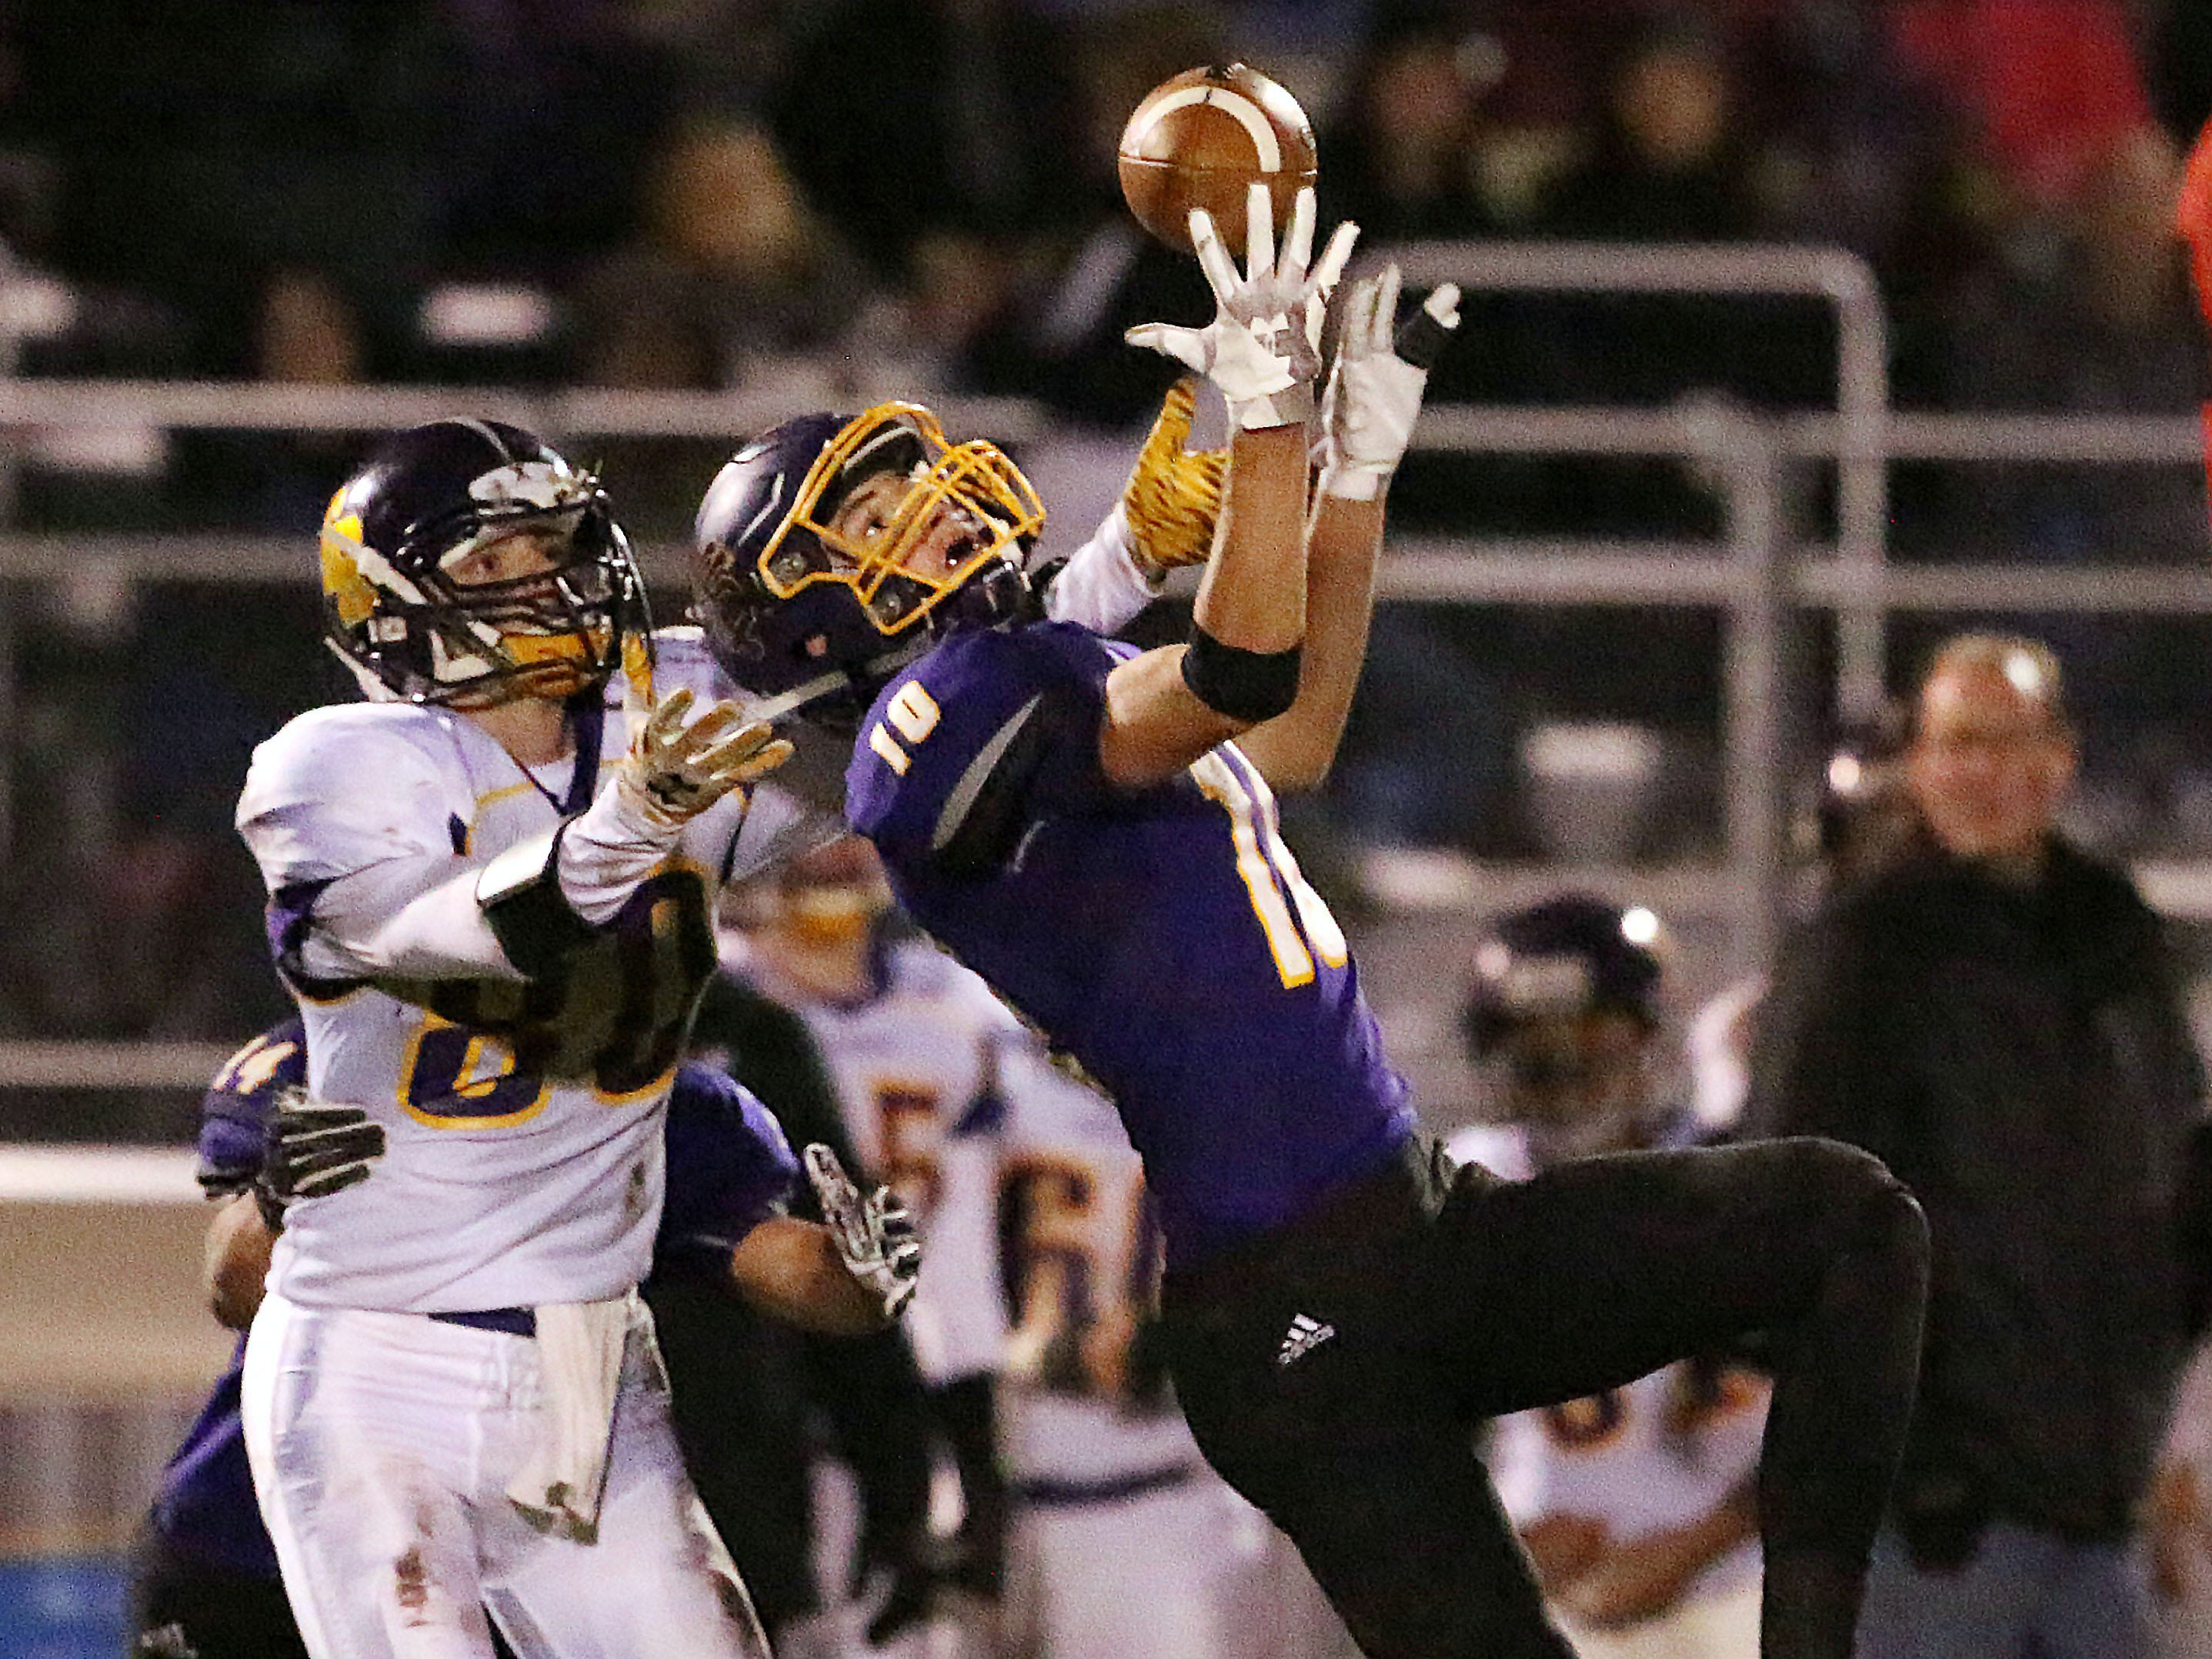 Sheboygan Falls' Justin Tenpas (10), intercepts the ball against Two Rivers' Austin Isley (80), Friday, October 12, 2018, in Sheboygan Falls, Wis.